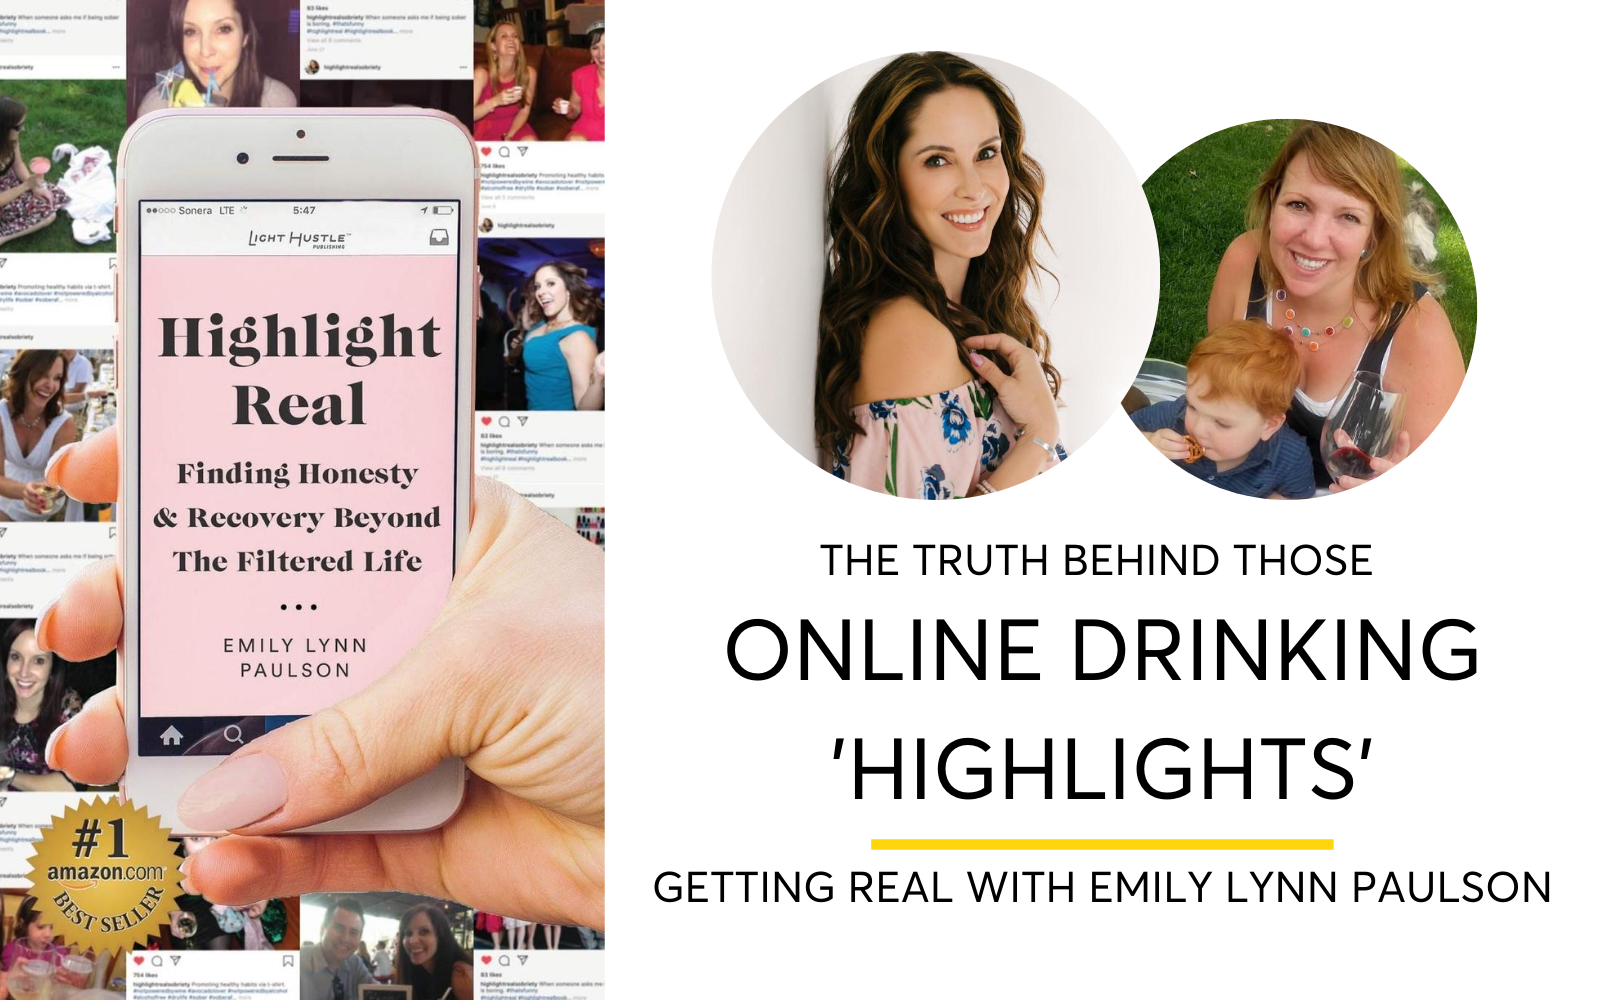 The Truth Behind Social Media Images and Drinking Highlights with Emily Lynn Paulson